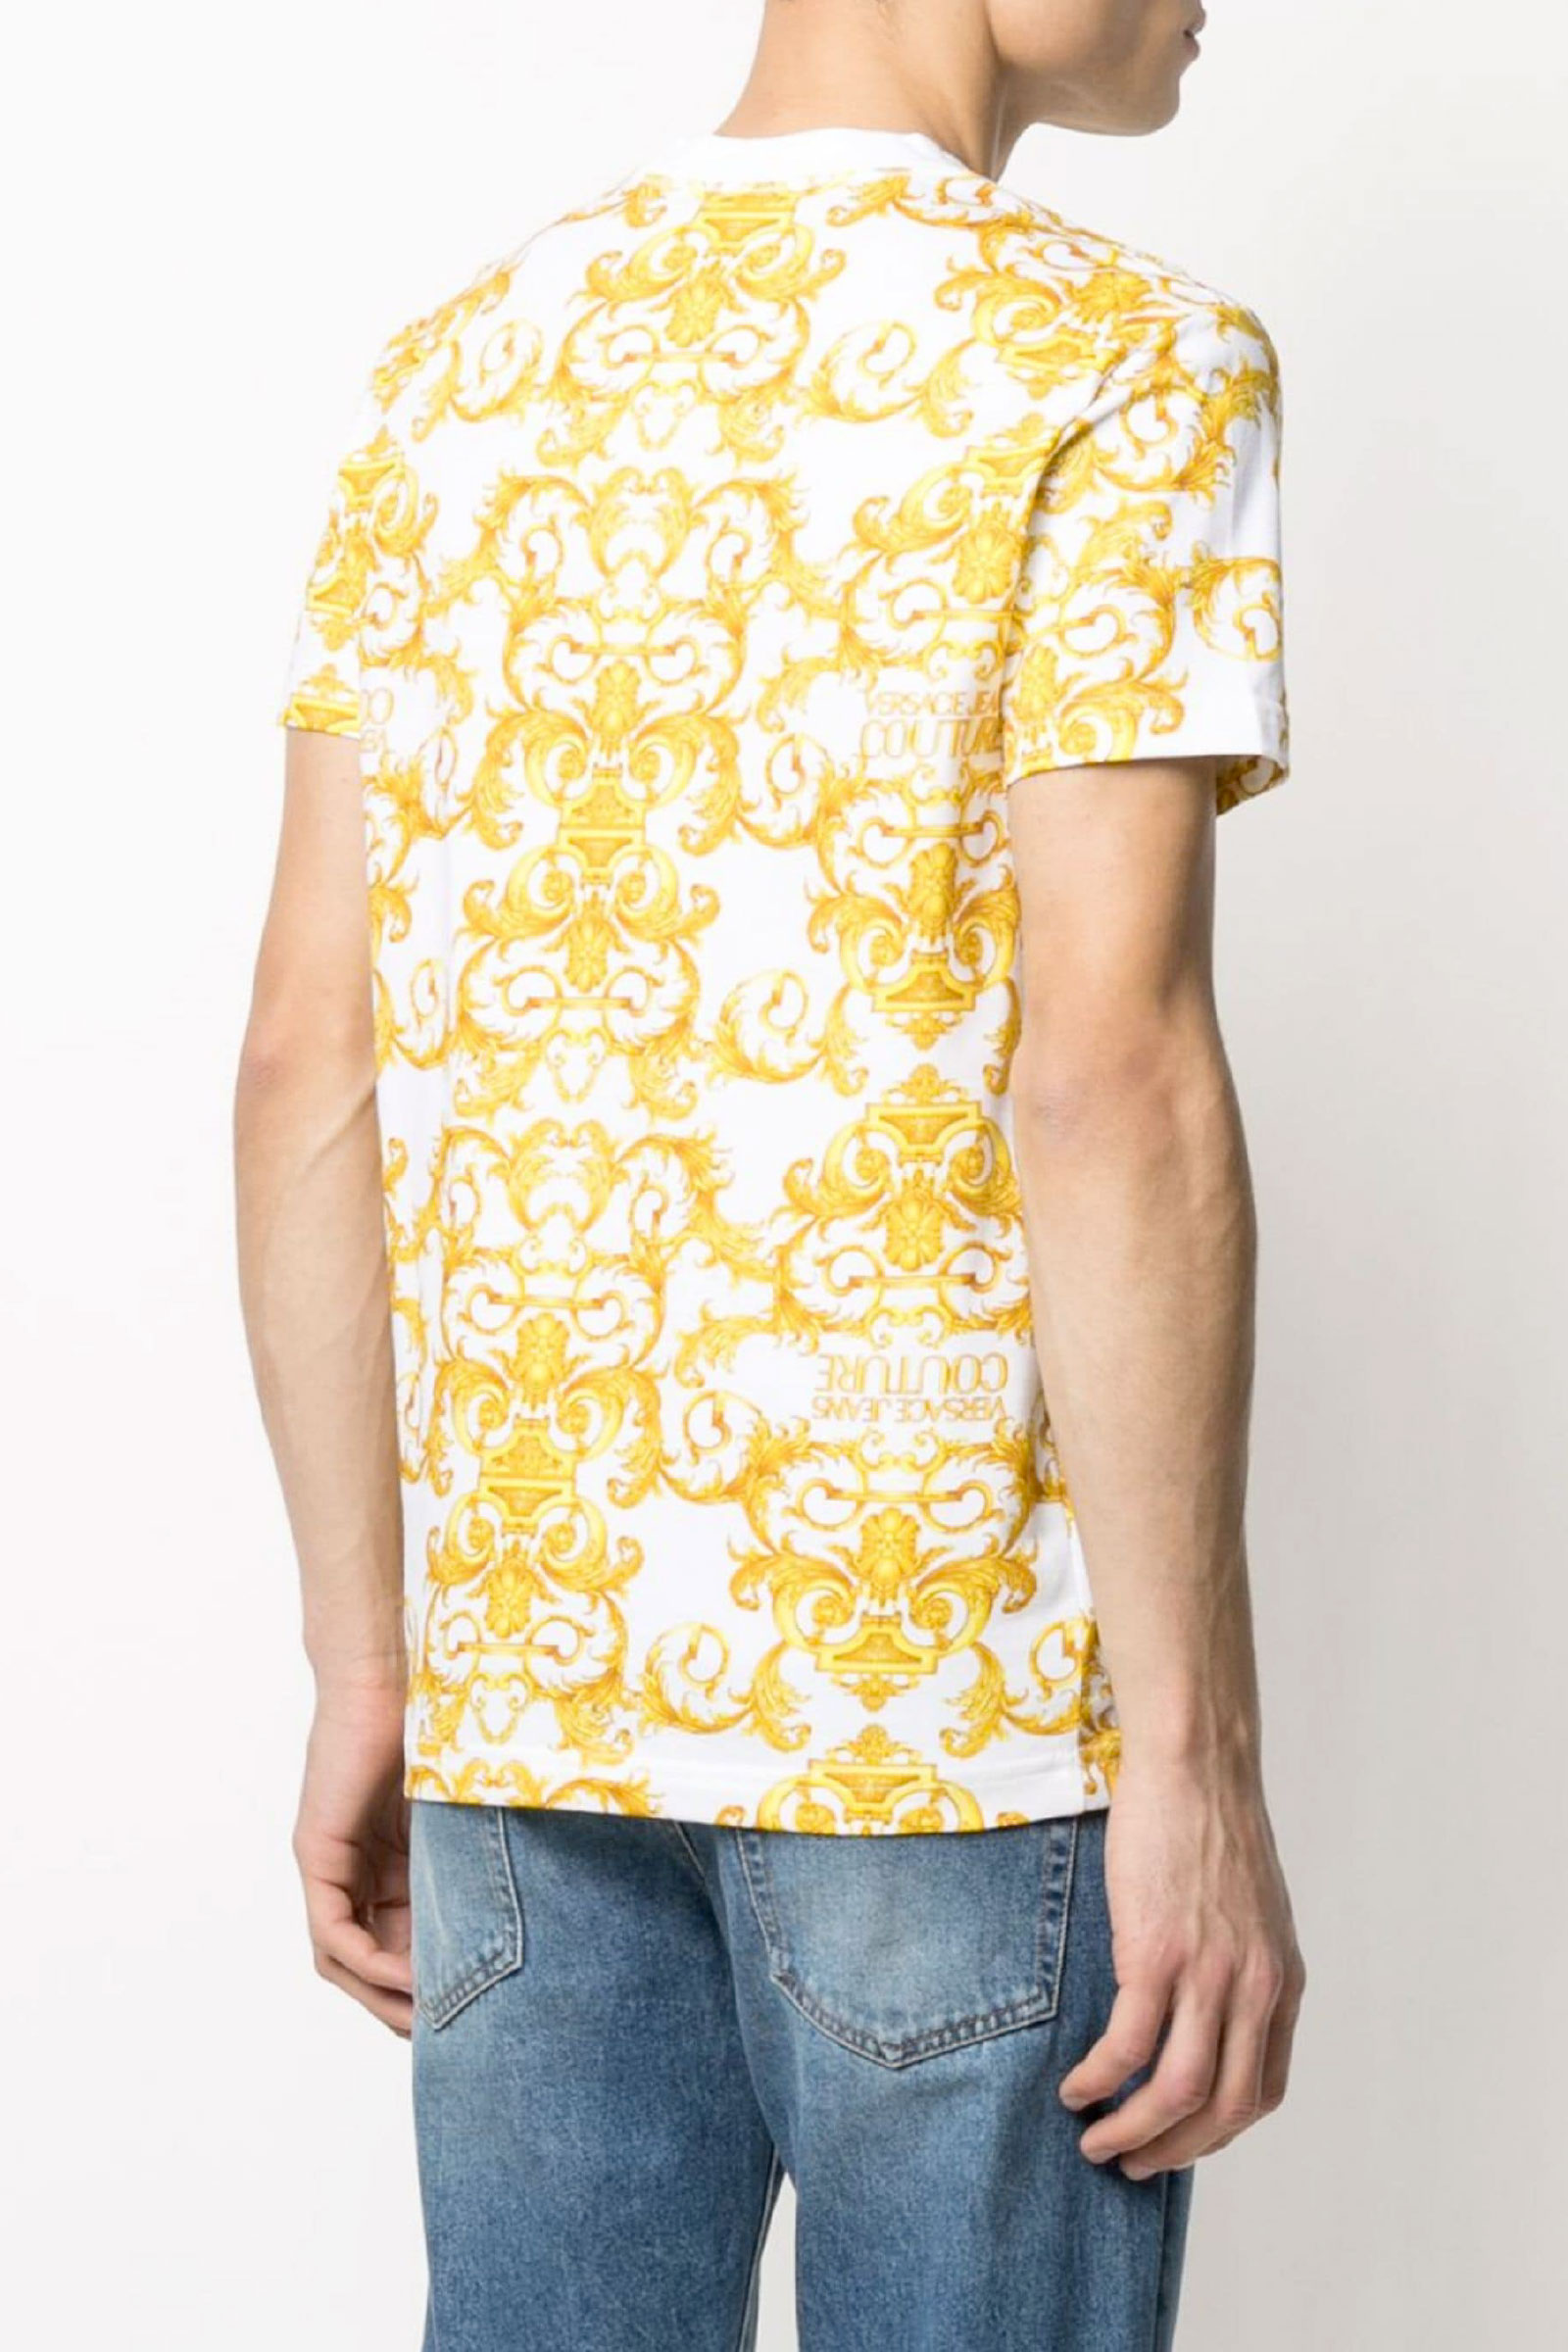 VERSACE JEANS COUTURE T-Shirt Uomo VERSACE JEANS COUTURE | T-Shirt | B3GWA7S0S01553